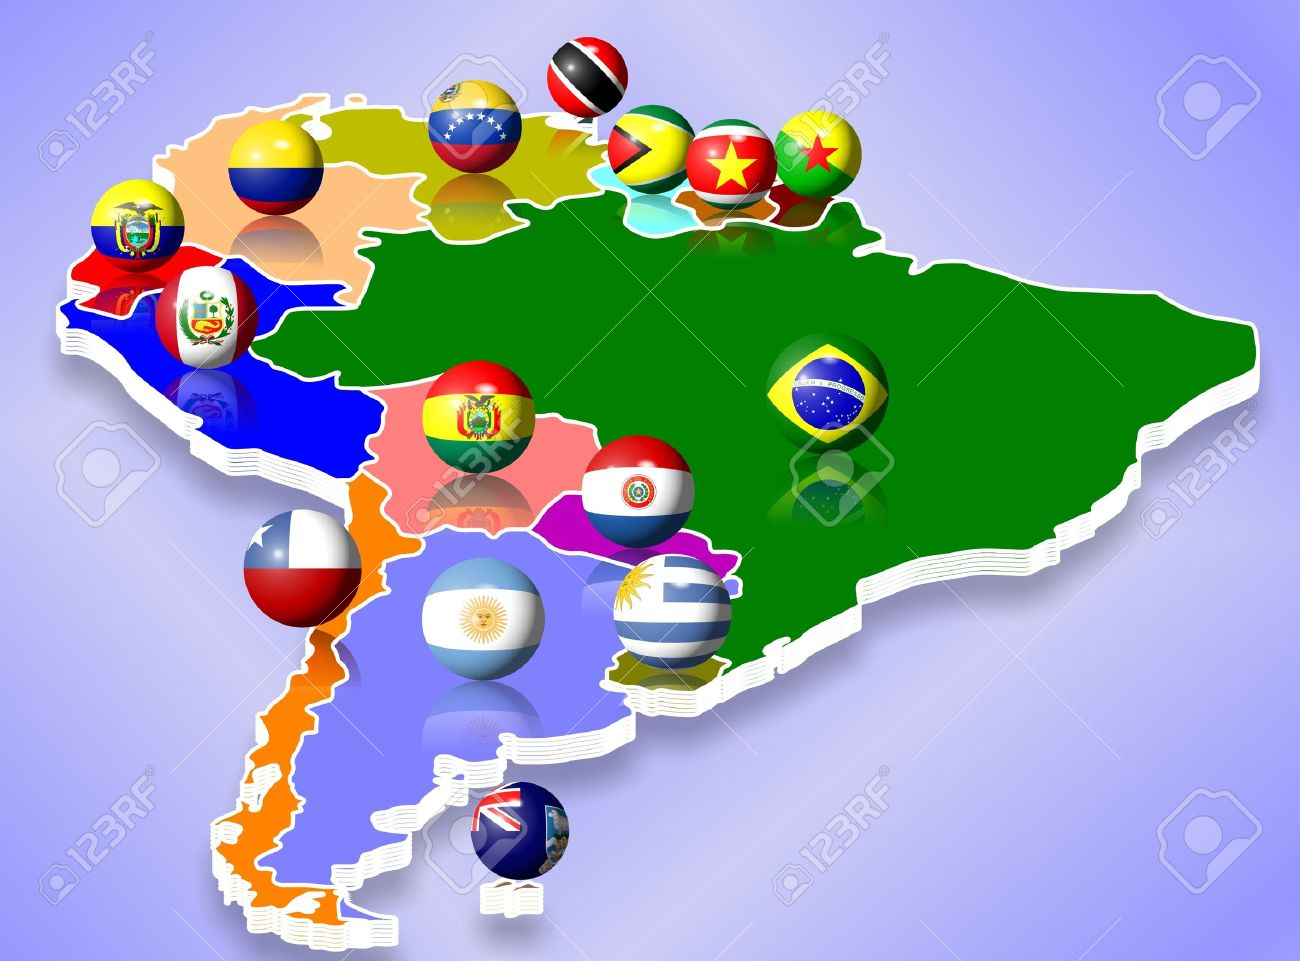 A Map Of South America And All Countries With Their Flags Shaped - Sur america map